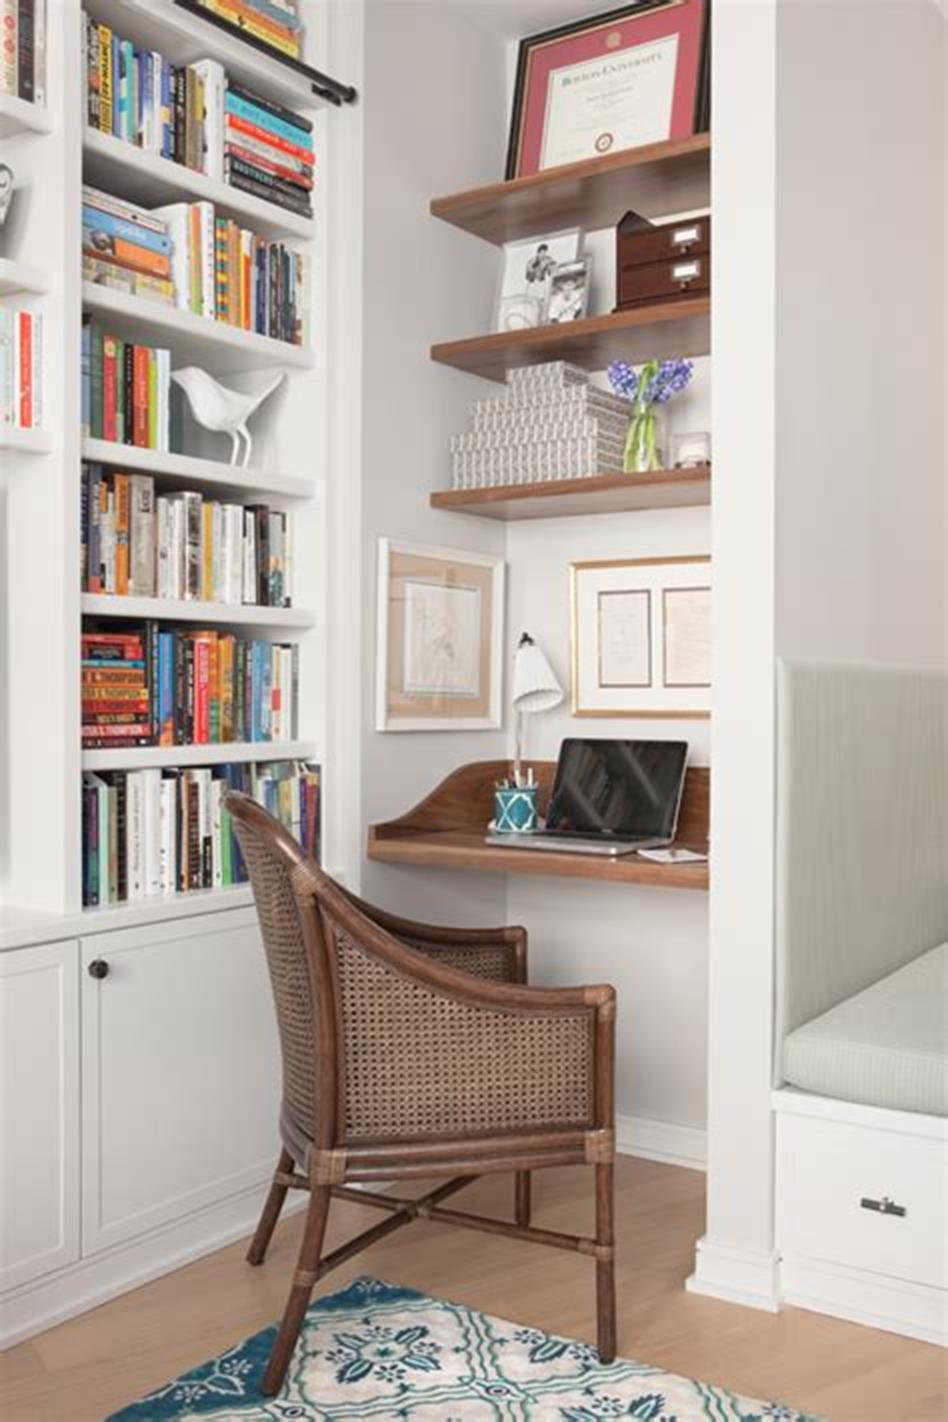 50 Best Small Space Office Decorating Ideas On a Budget 2019 5